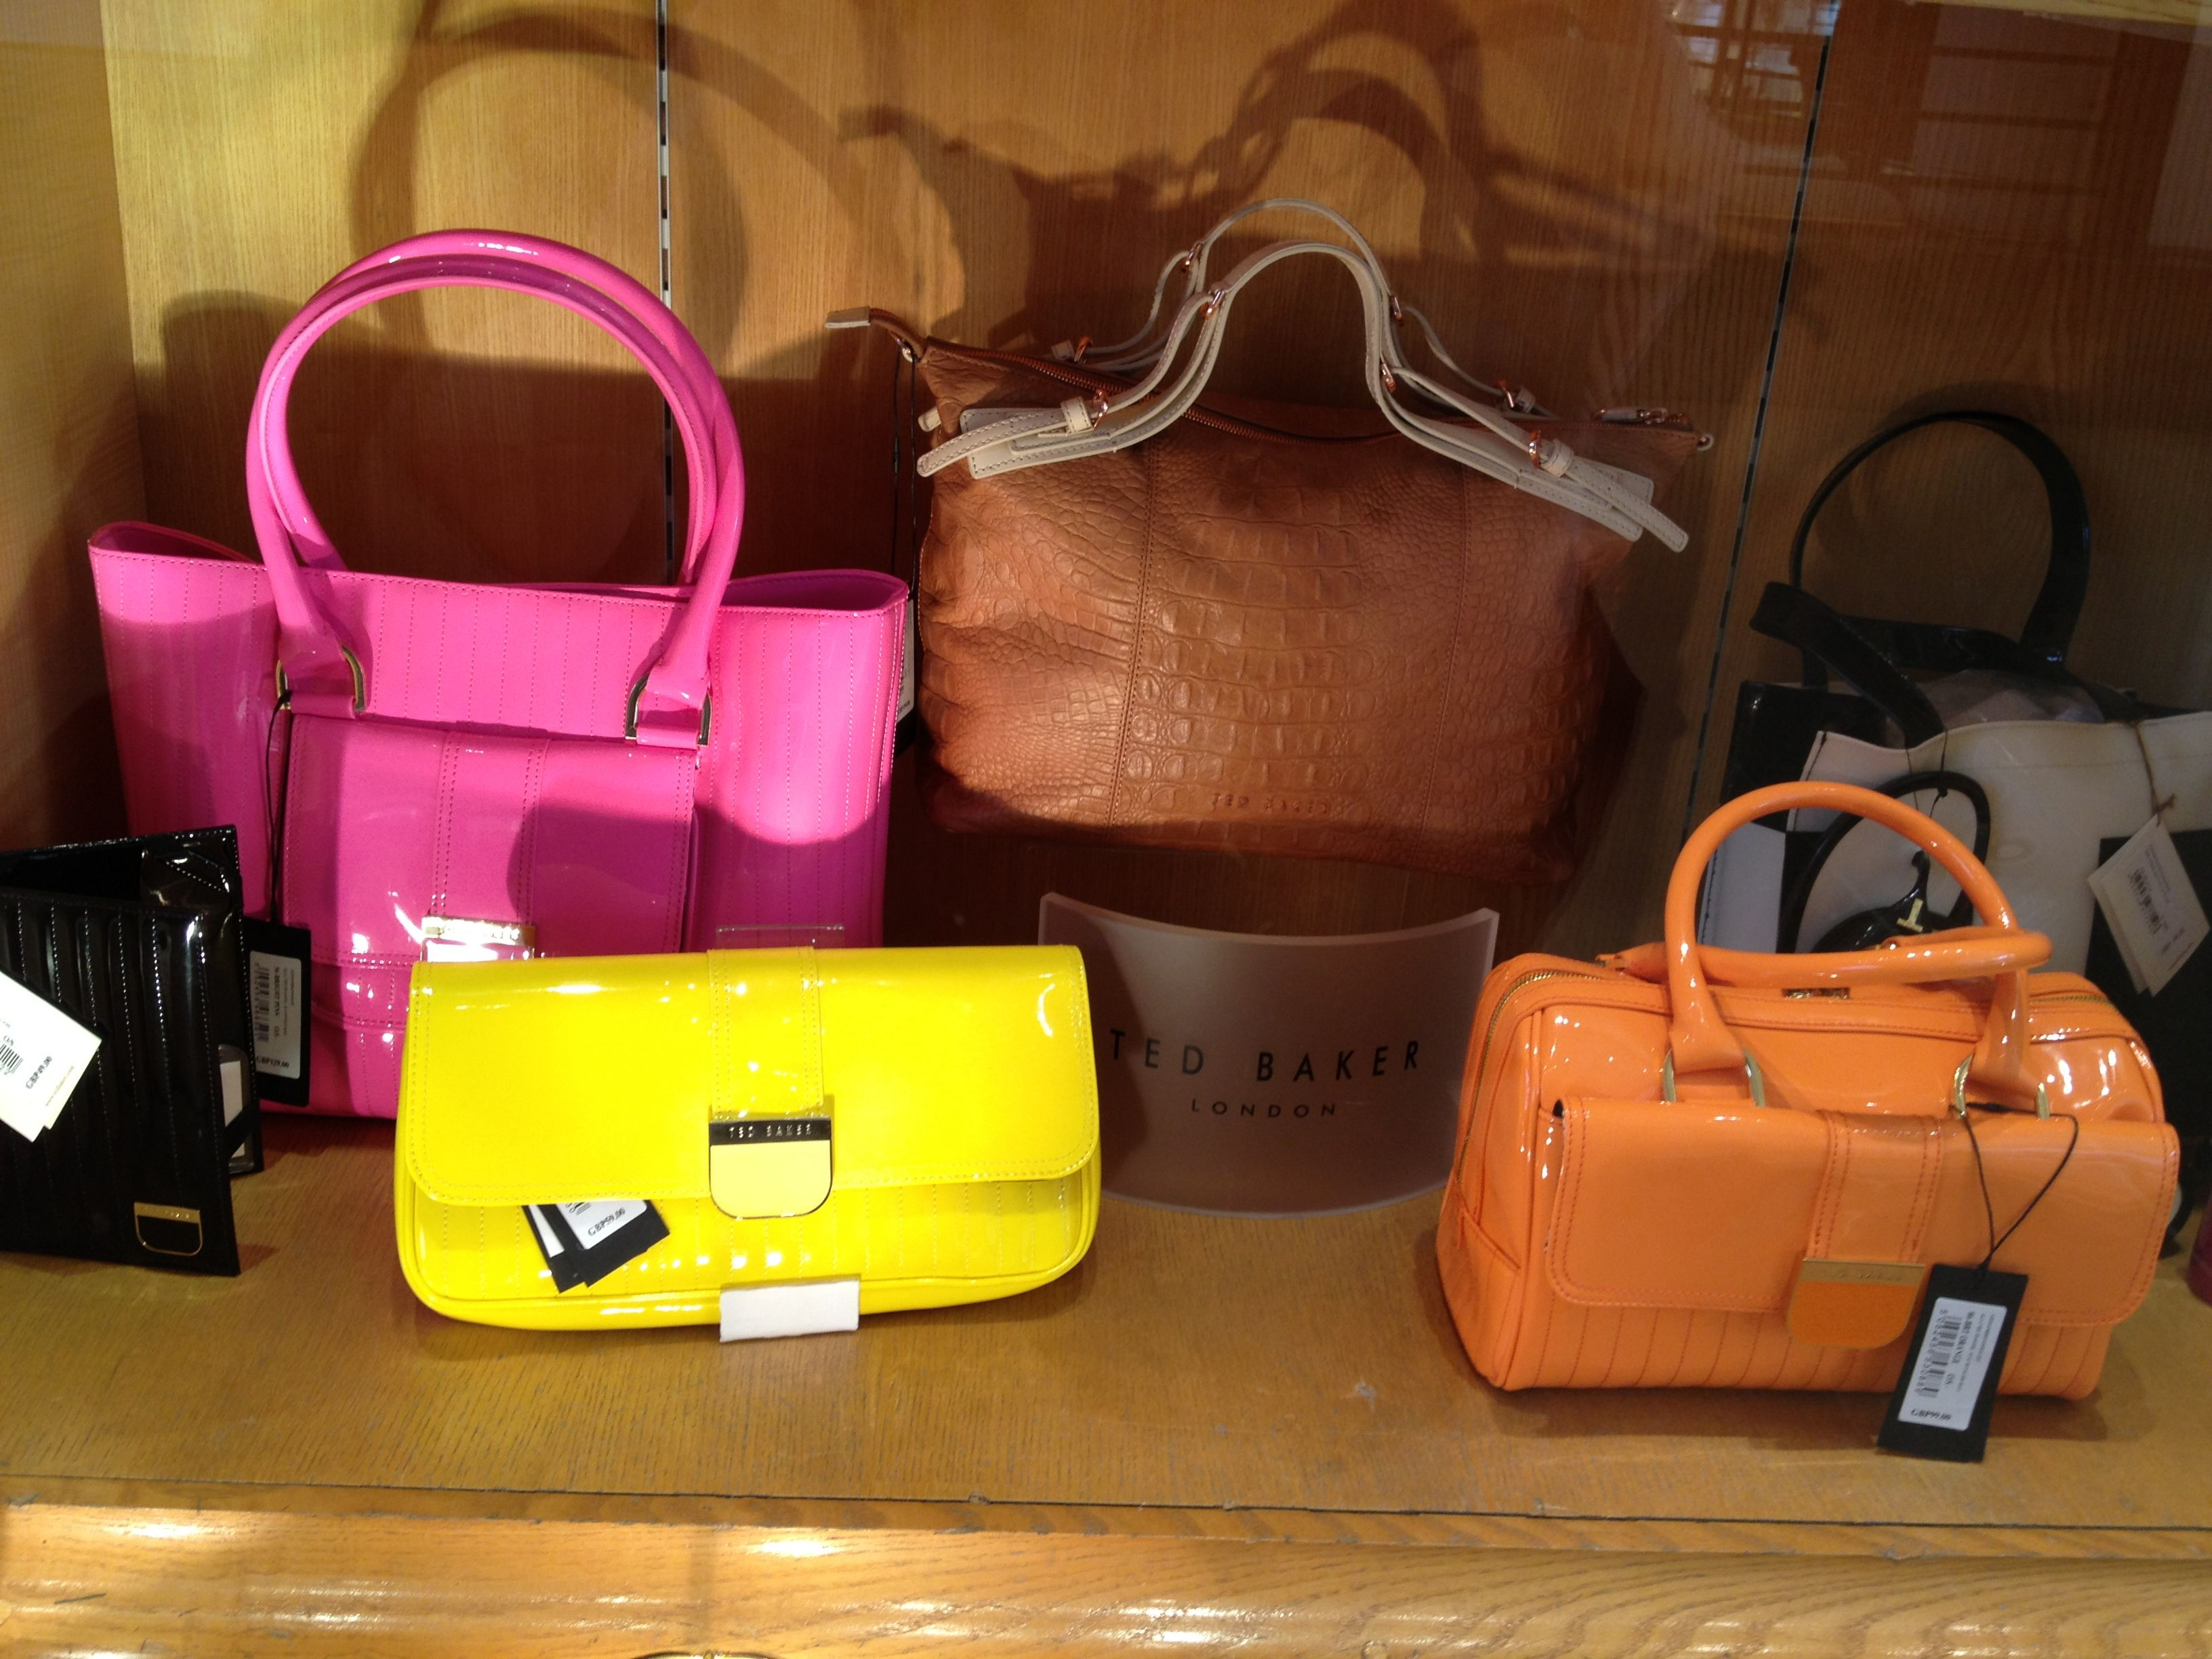 Ted Baker Bags At Boros Miss Look Me Pinterest And Bag